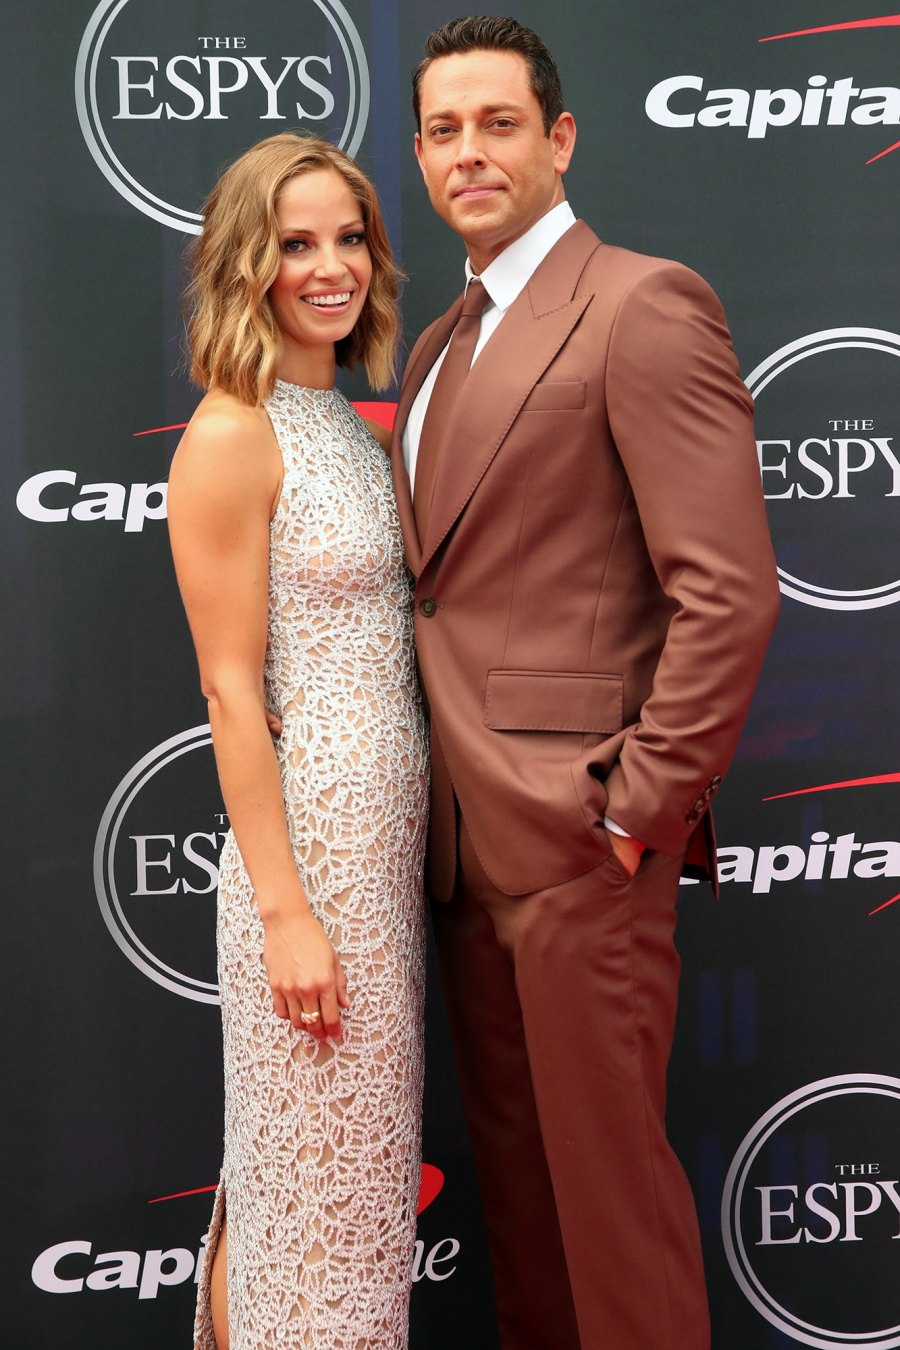 Zachary Levi Makes Red Carpet Debut With Rumored Girlfriend Caroline Tyler at the ESPYs